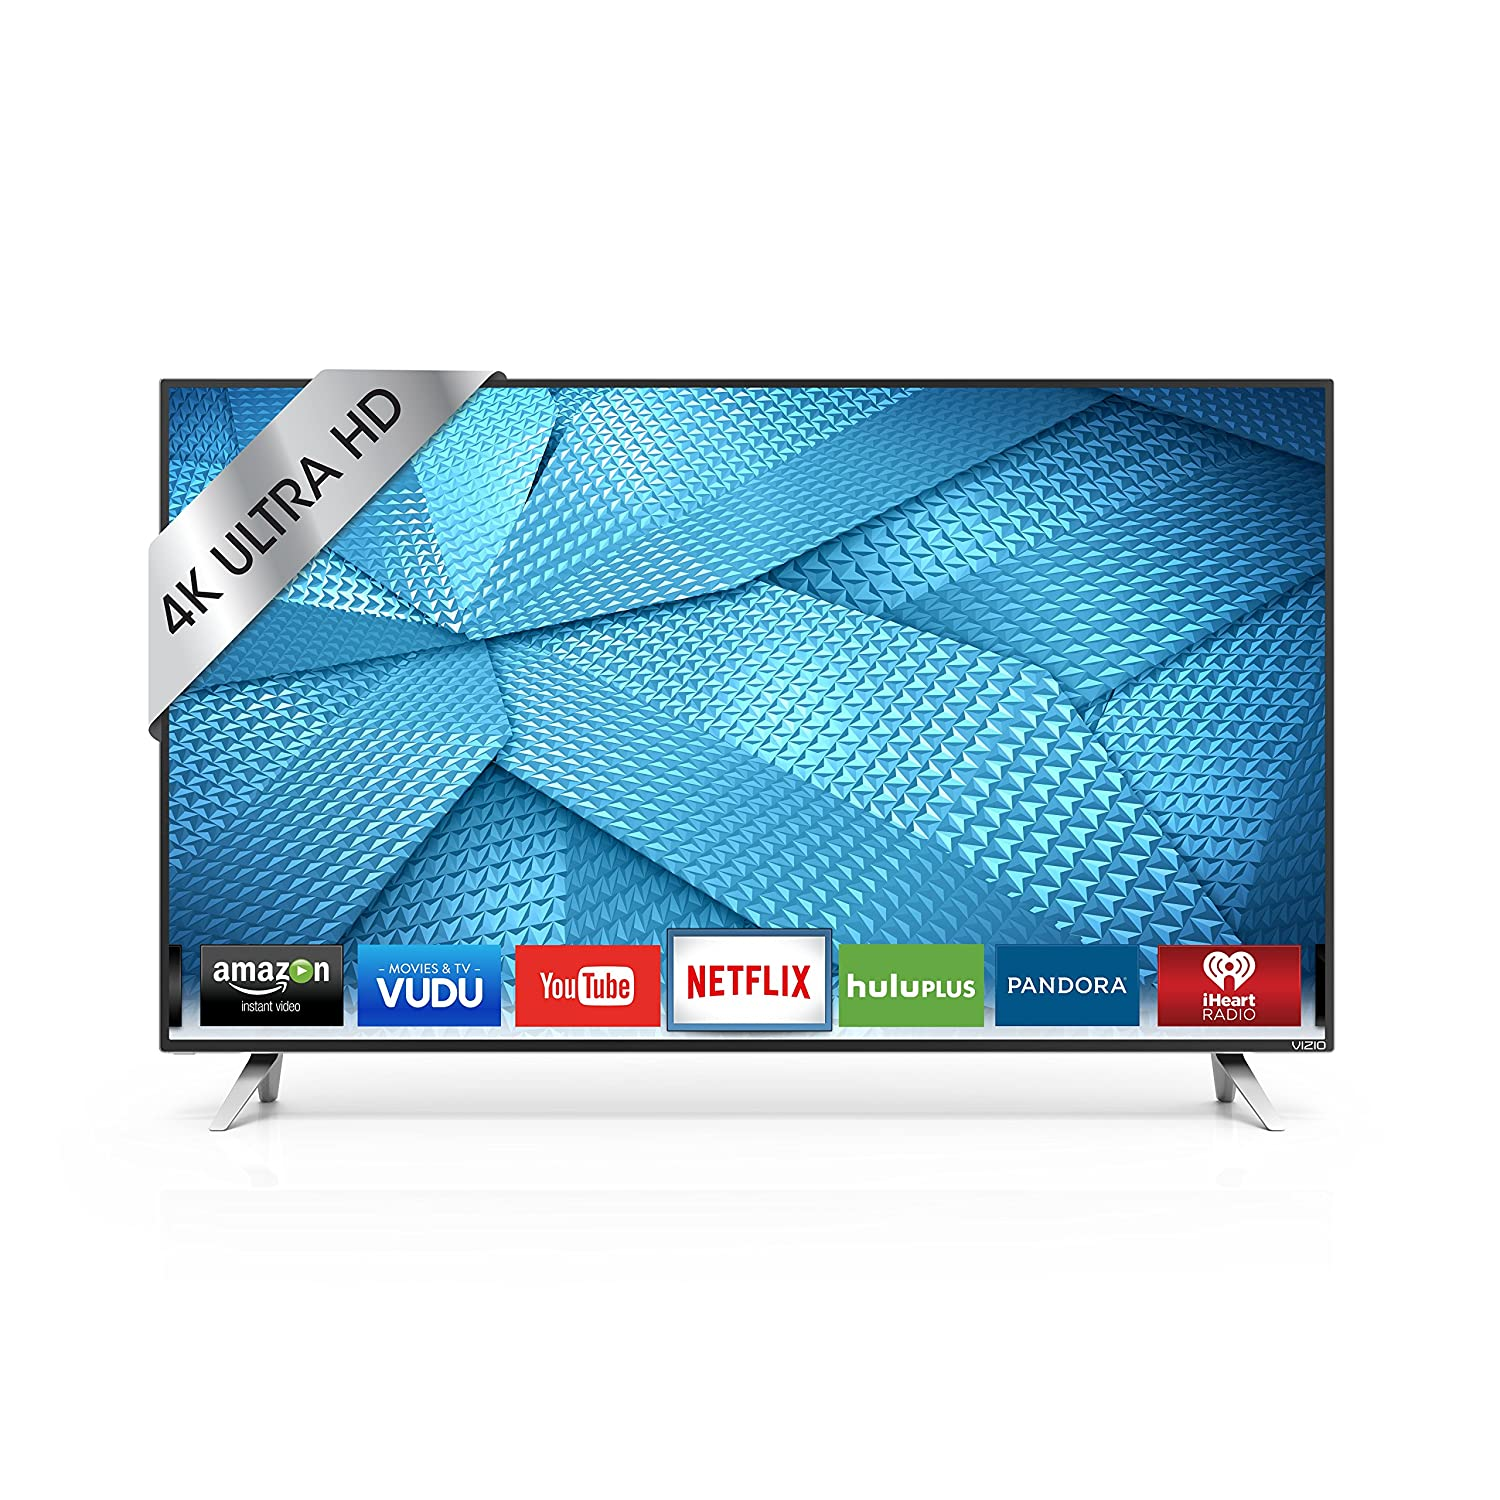 Amazon VIZIO M50 C1 50 Inch 4K Ultra HD Smart LED TV 2015